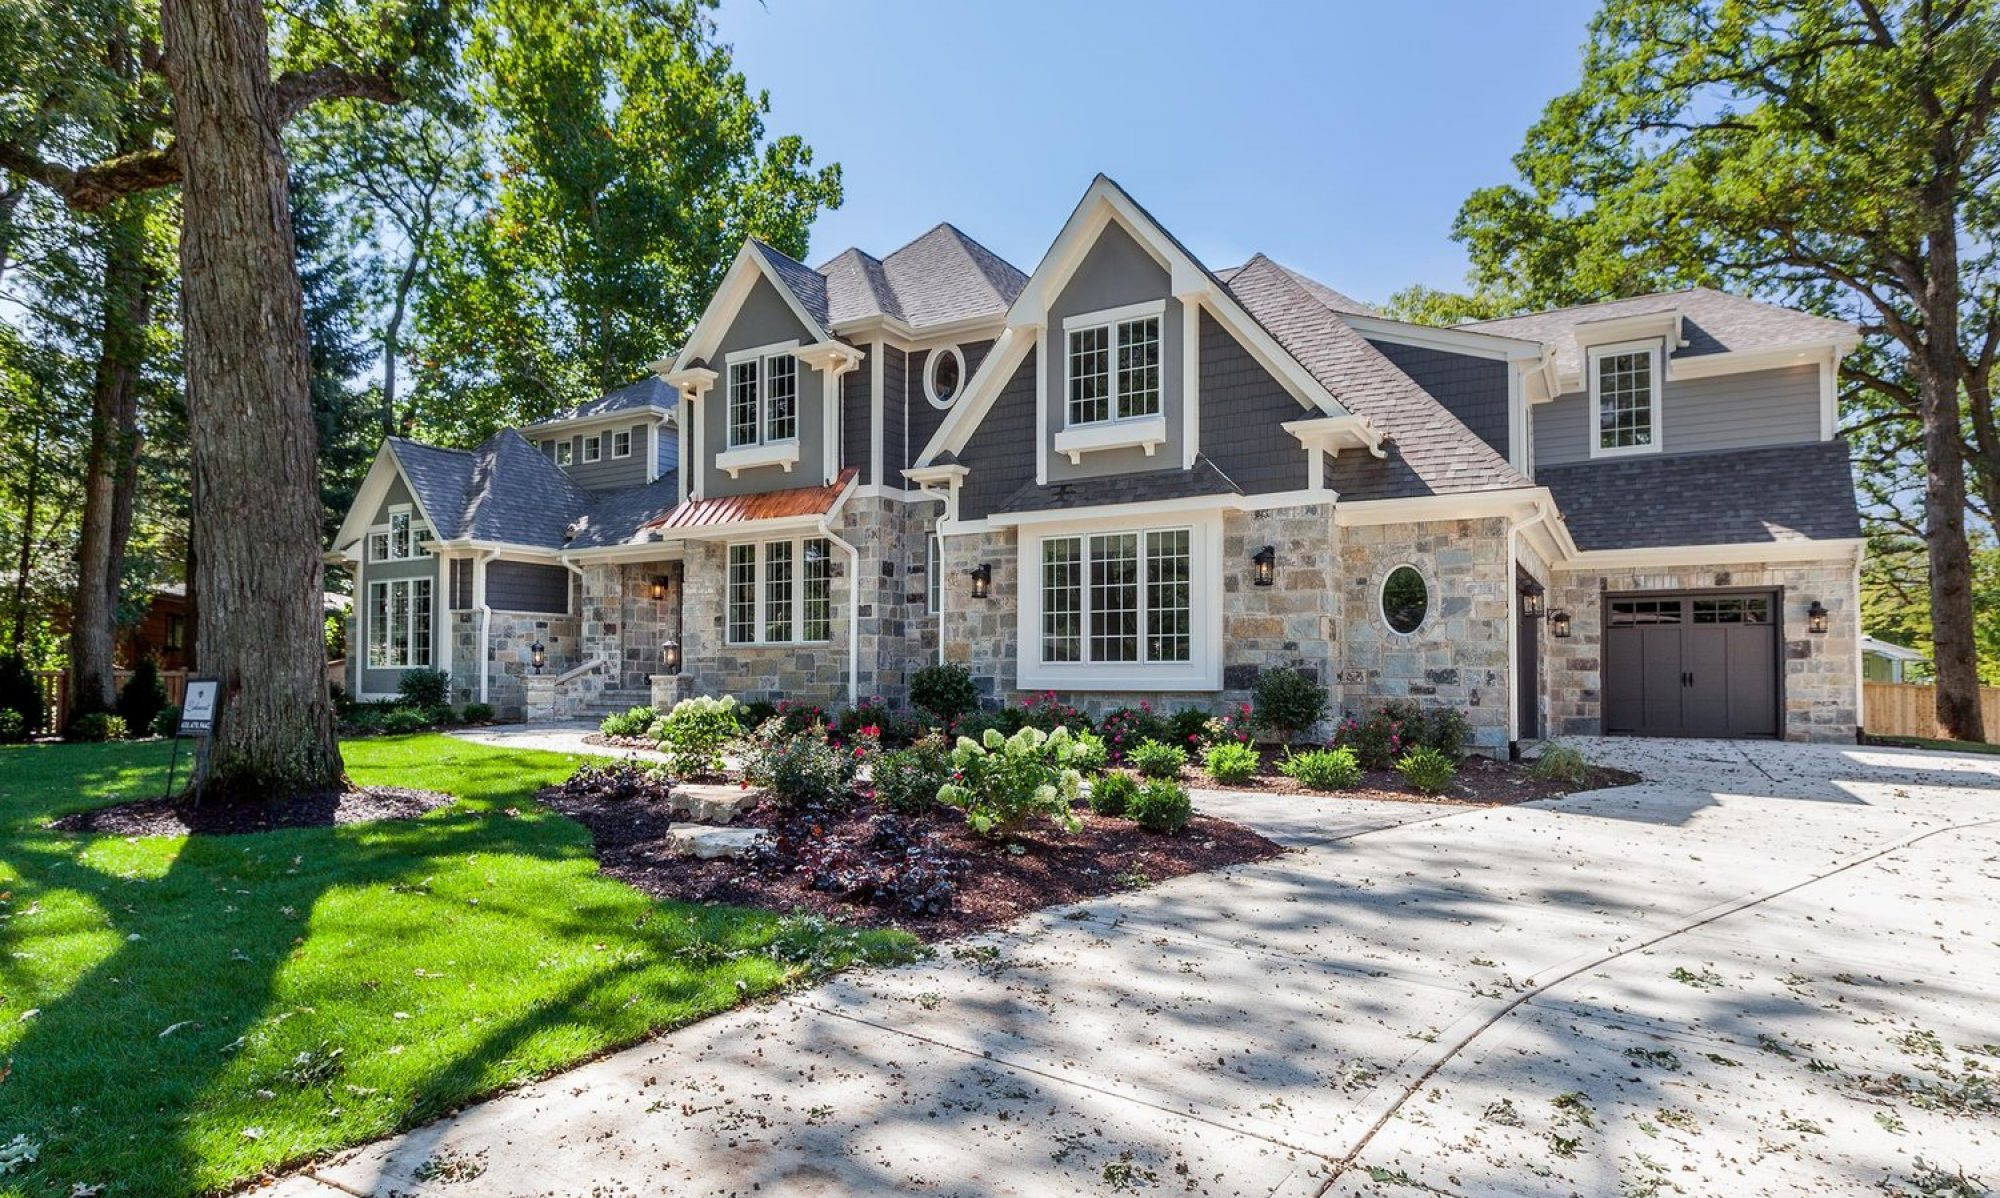 Home Builder News and Tips